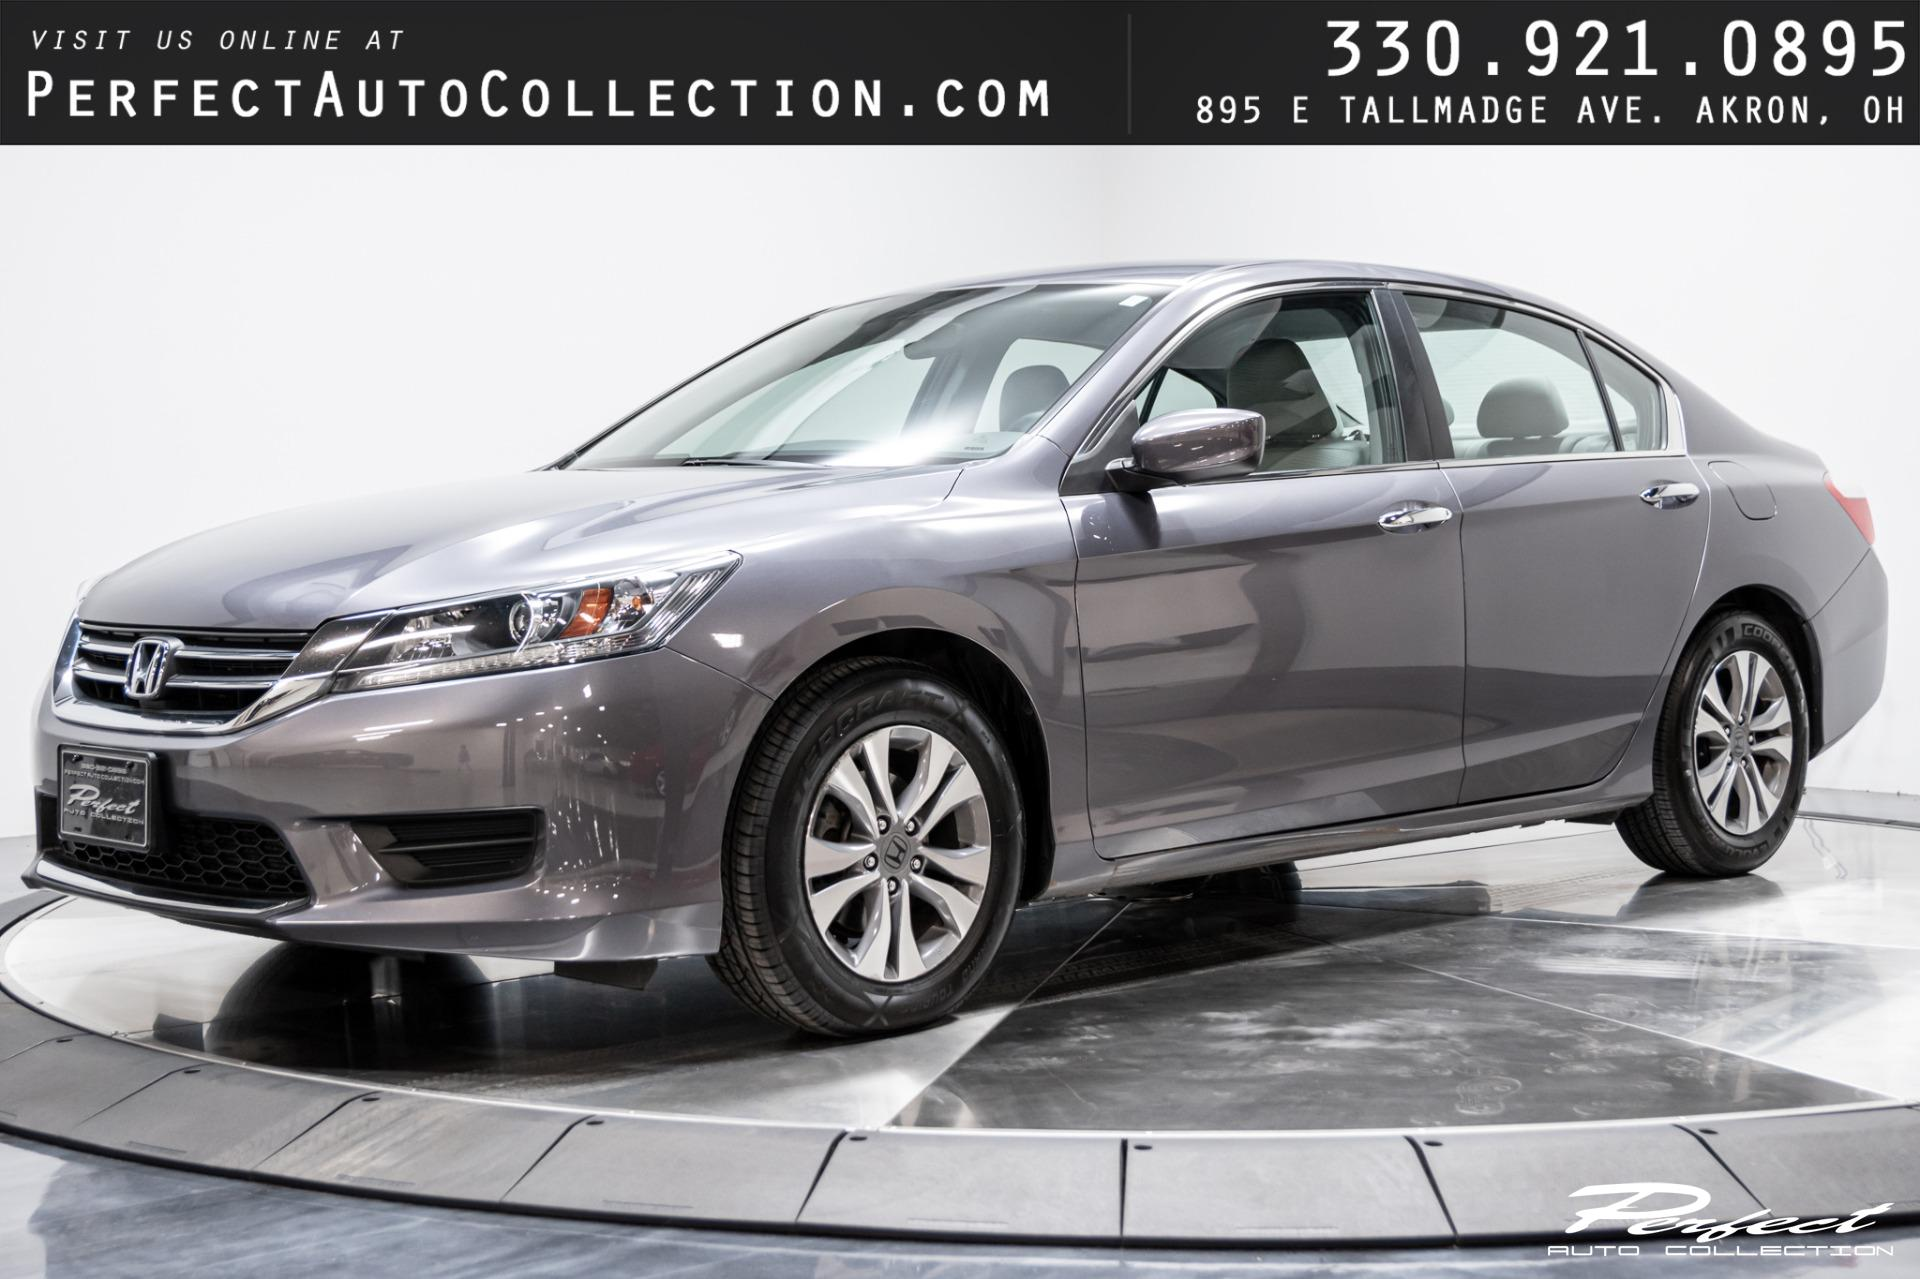 Used 2015 Honda Accord LX for sale Sold at Perfect Auto Collection in Akron OH 44310 1